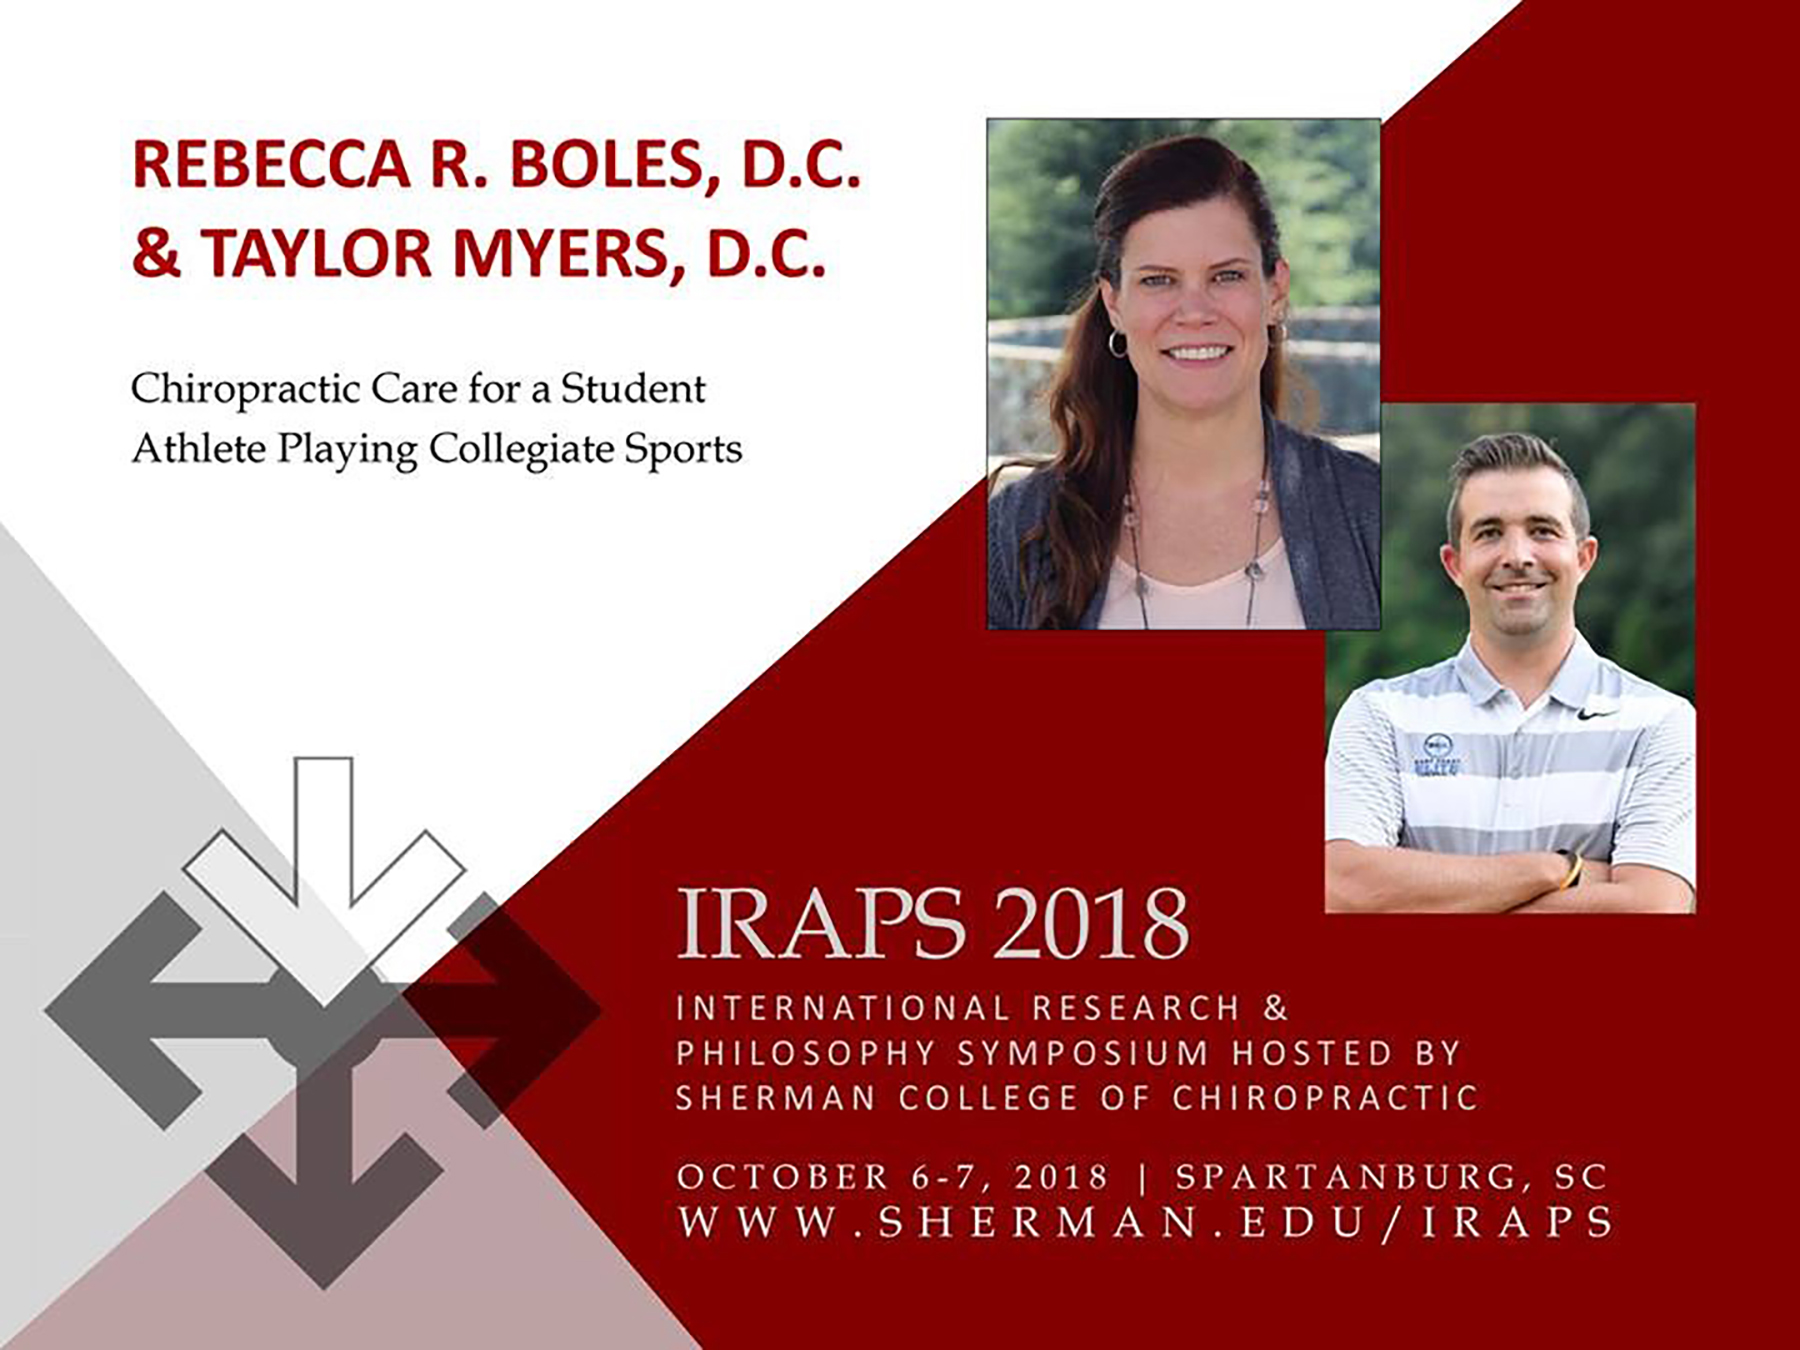 IRAPS 2018 - Chiropractic Care for a Student Athlete Playing Collegiate Sportshttp://www.cvent.com/events/iraps-2018/event-summary-830a3dc156c749ed9322de0326bc3df0.aspx